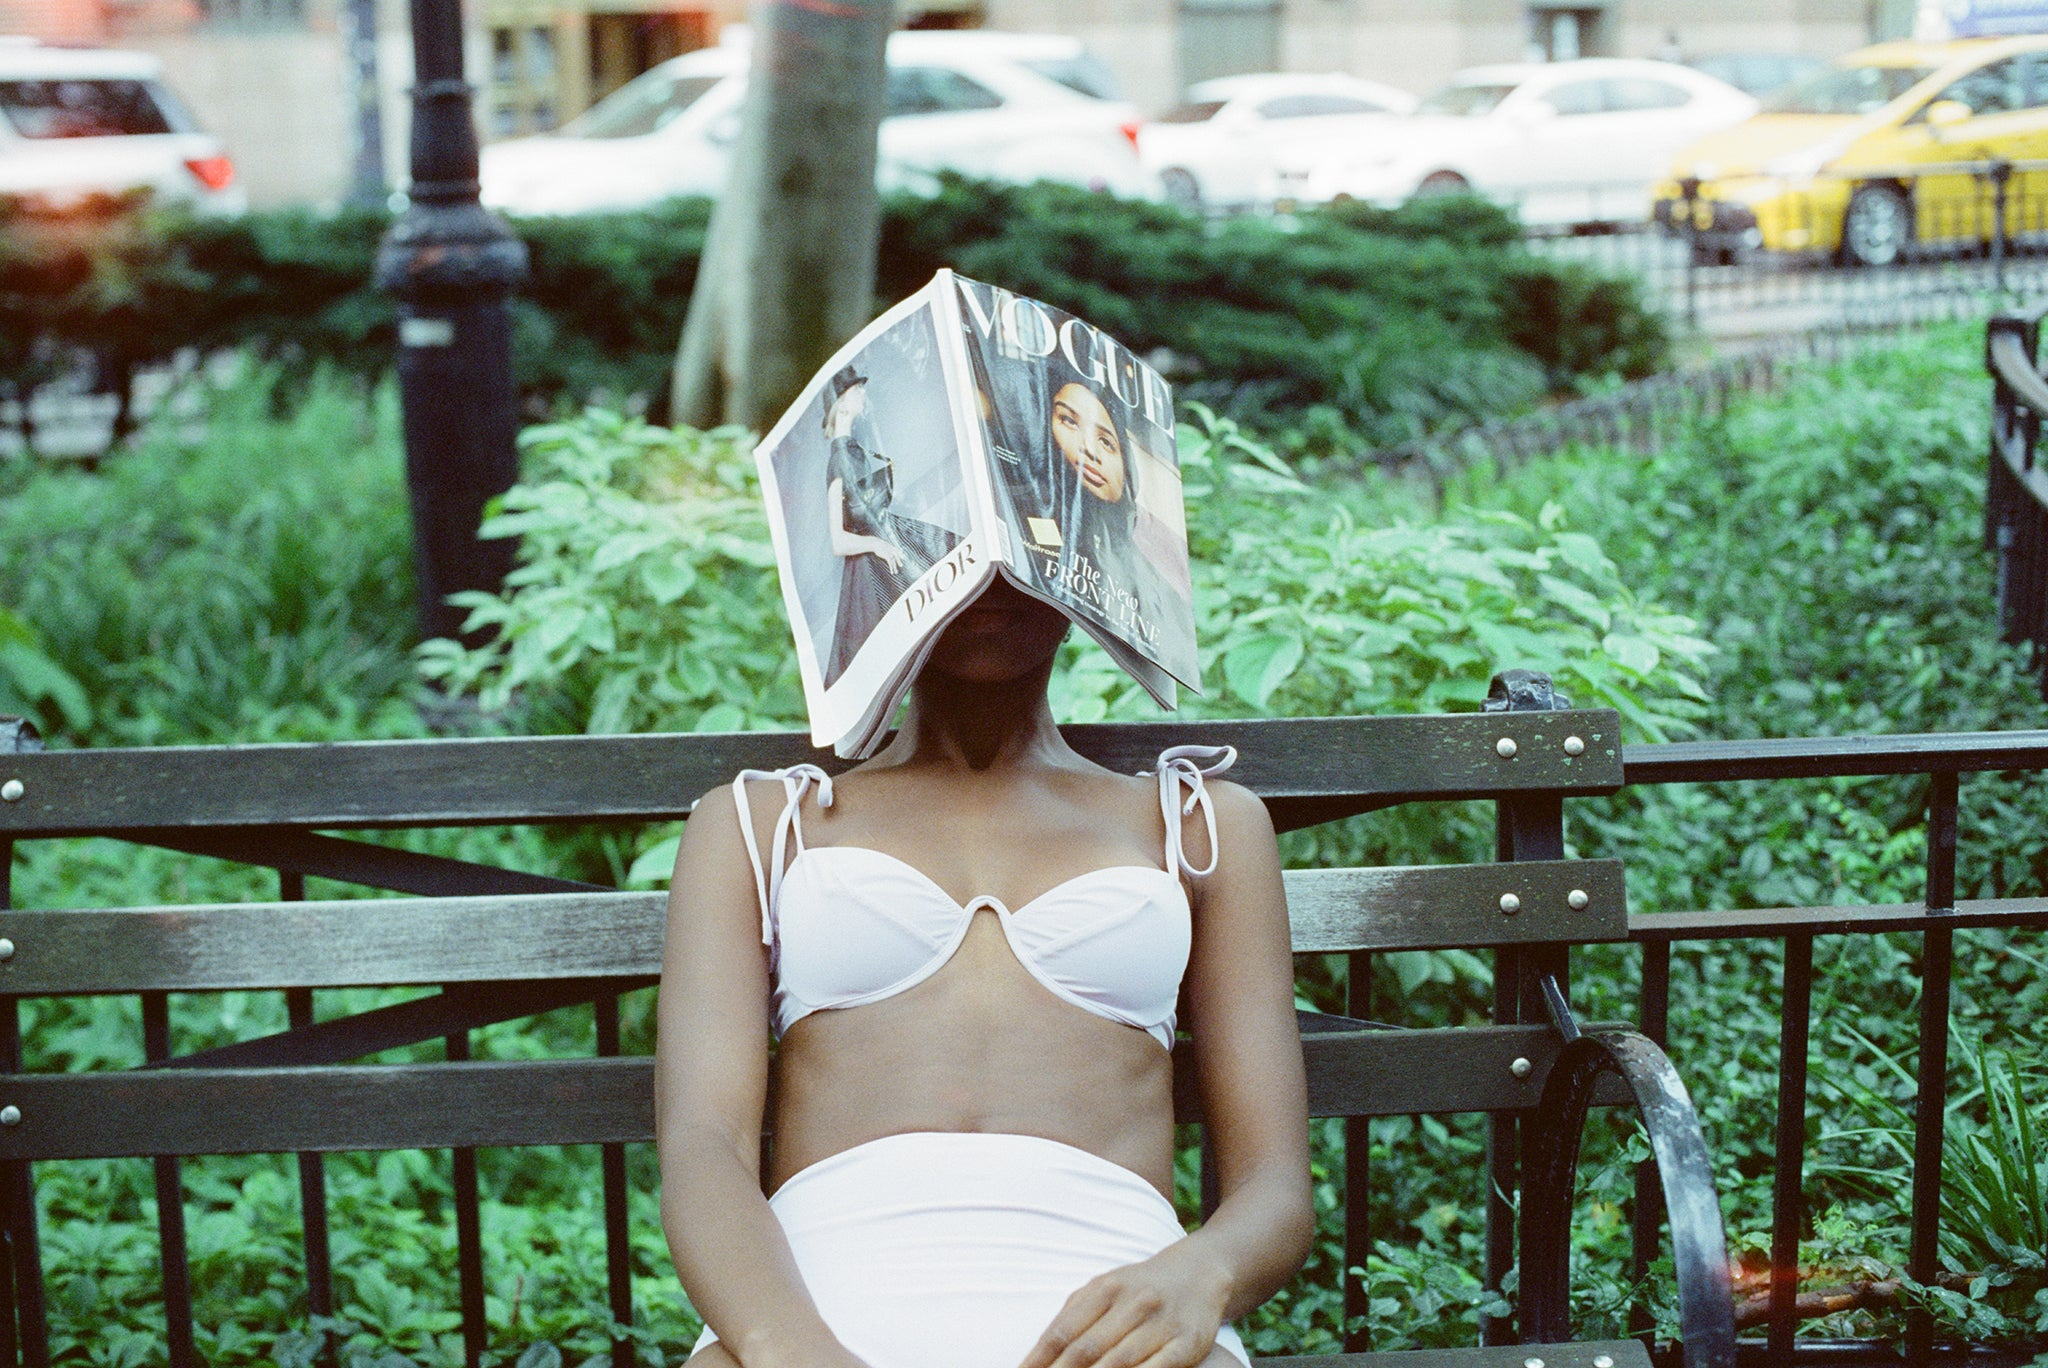 woman sitting on bench with a book on her face